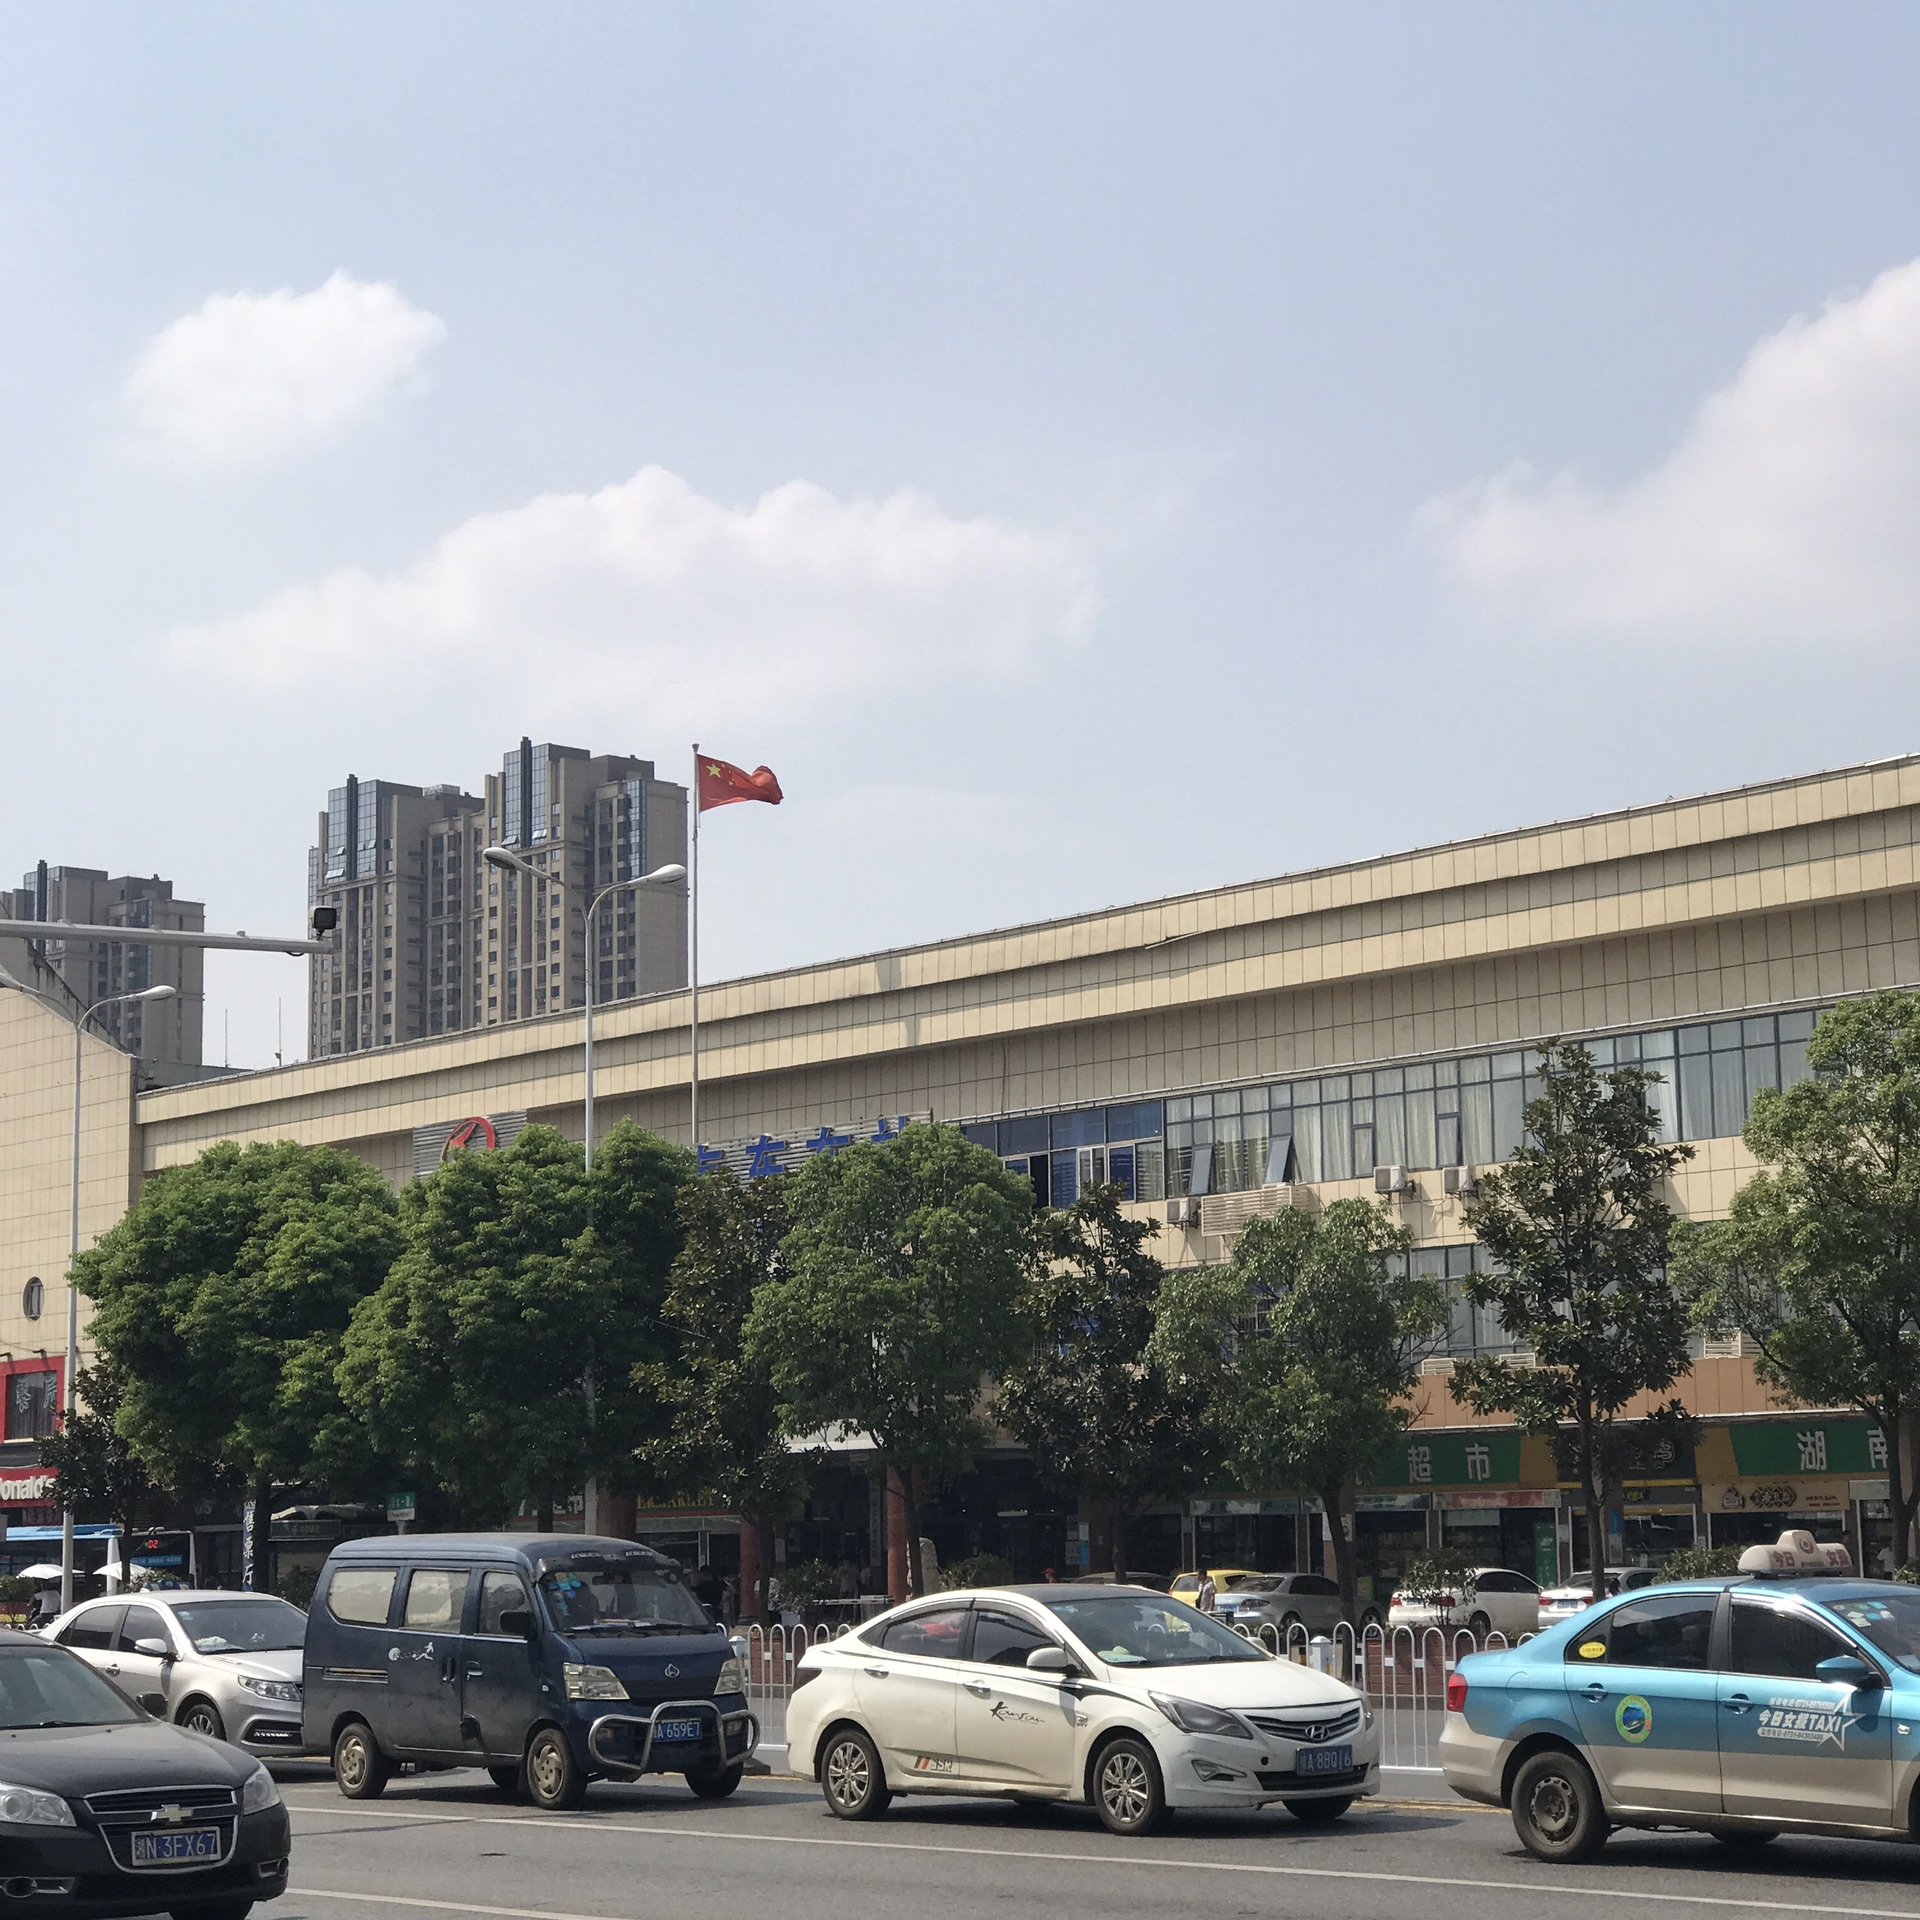 changsha bus station